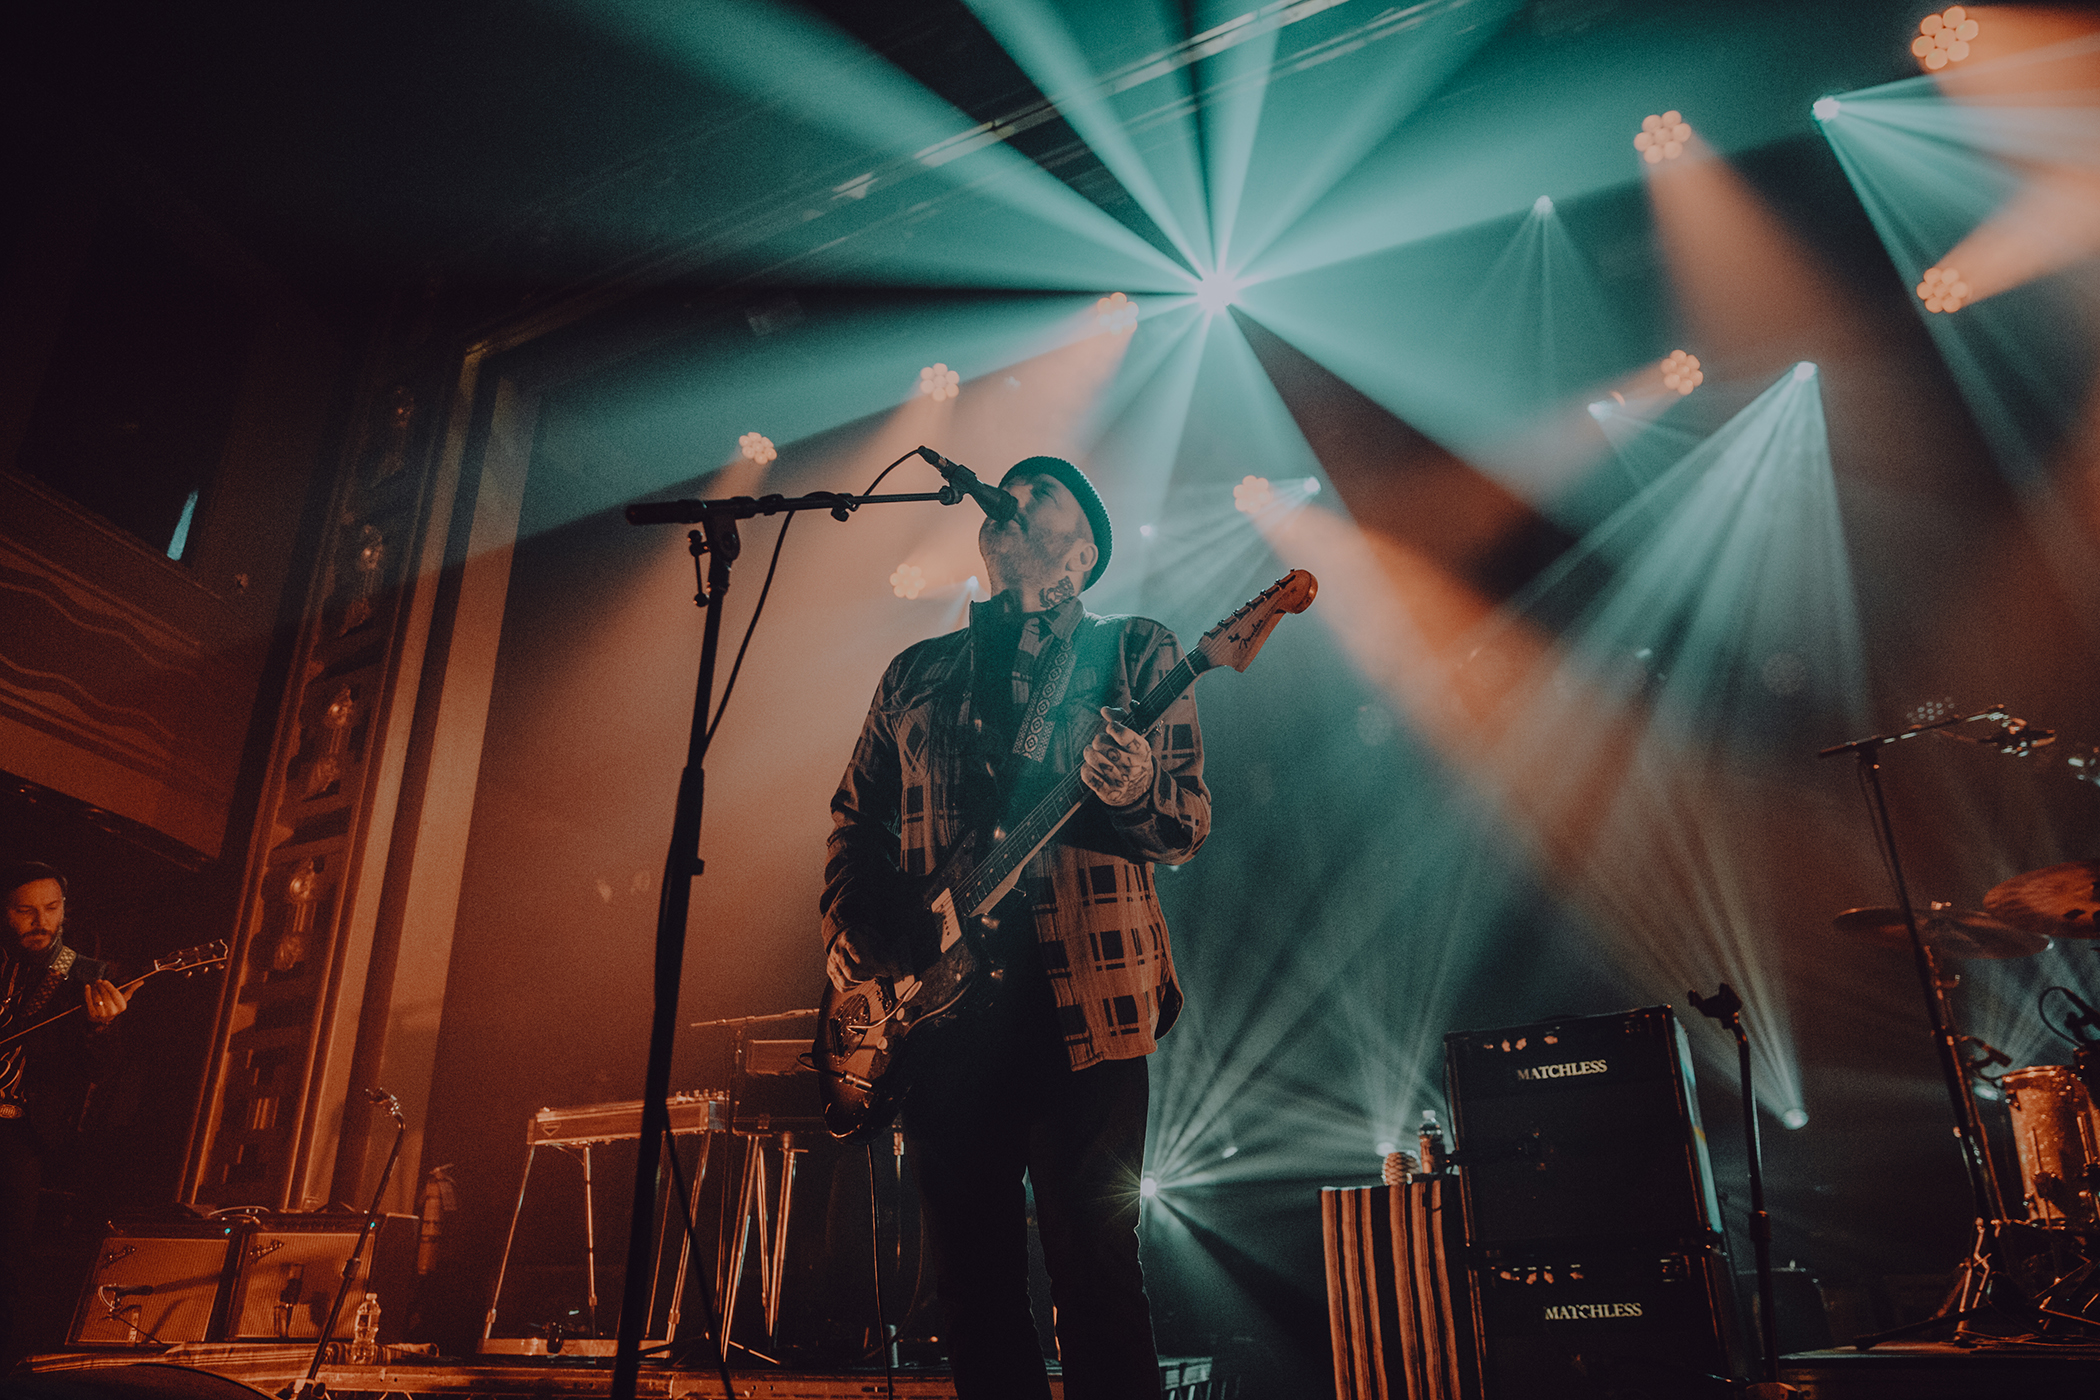 LIVE REVIEW + PHOTOS: City and Colour captivate New York's Webster Hall